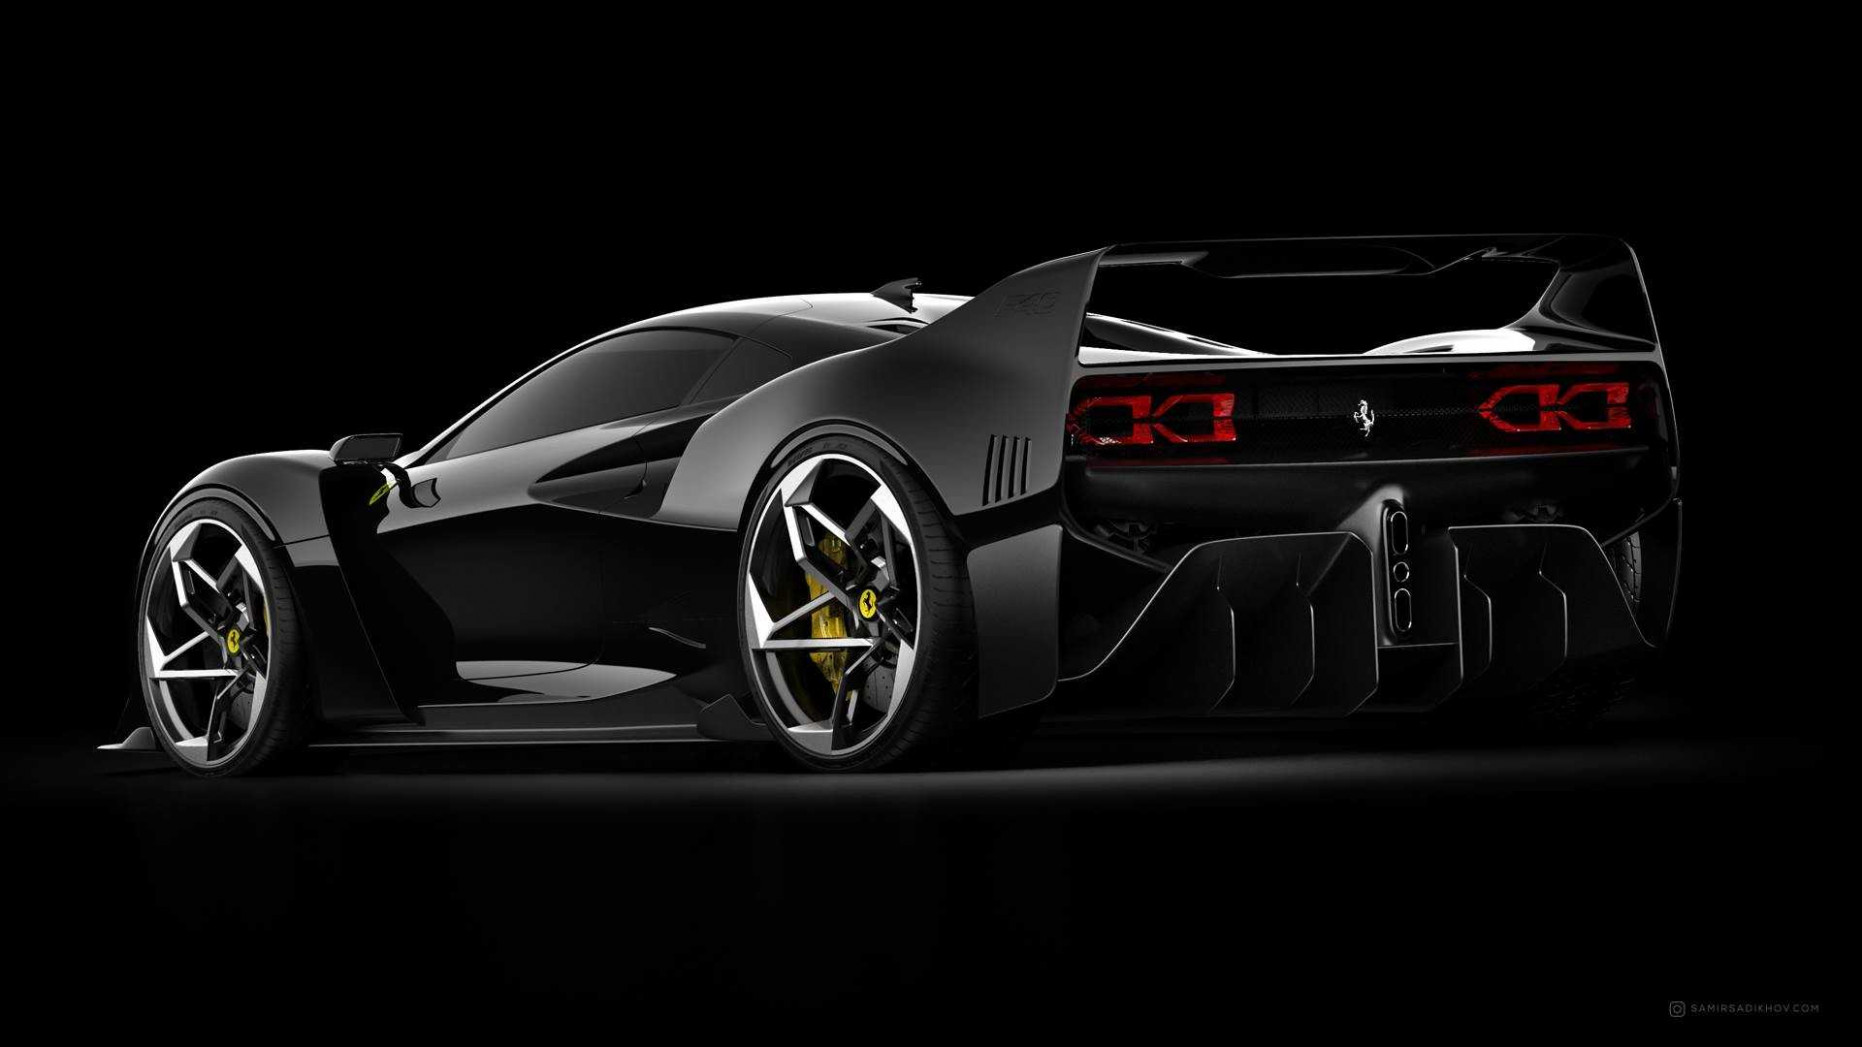 Ferrari F6 Tribute Is Stunning From All Angles